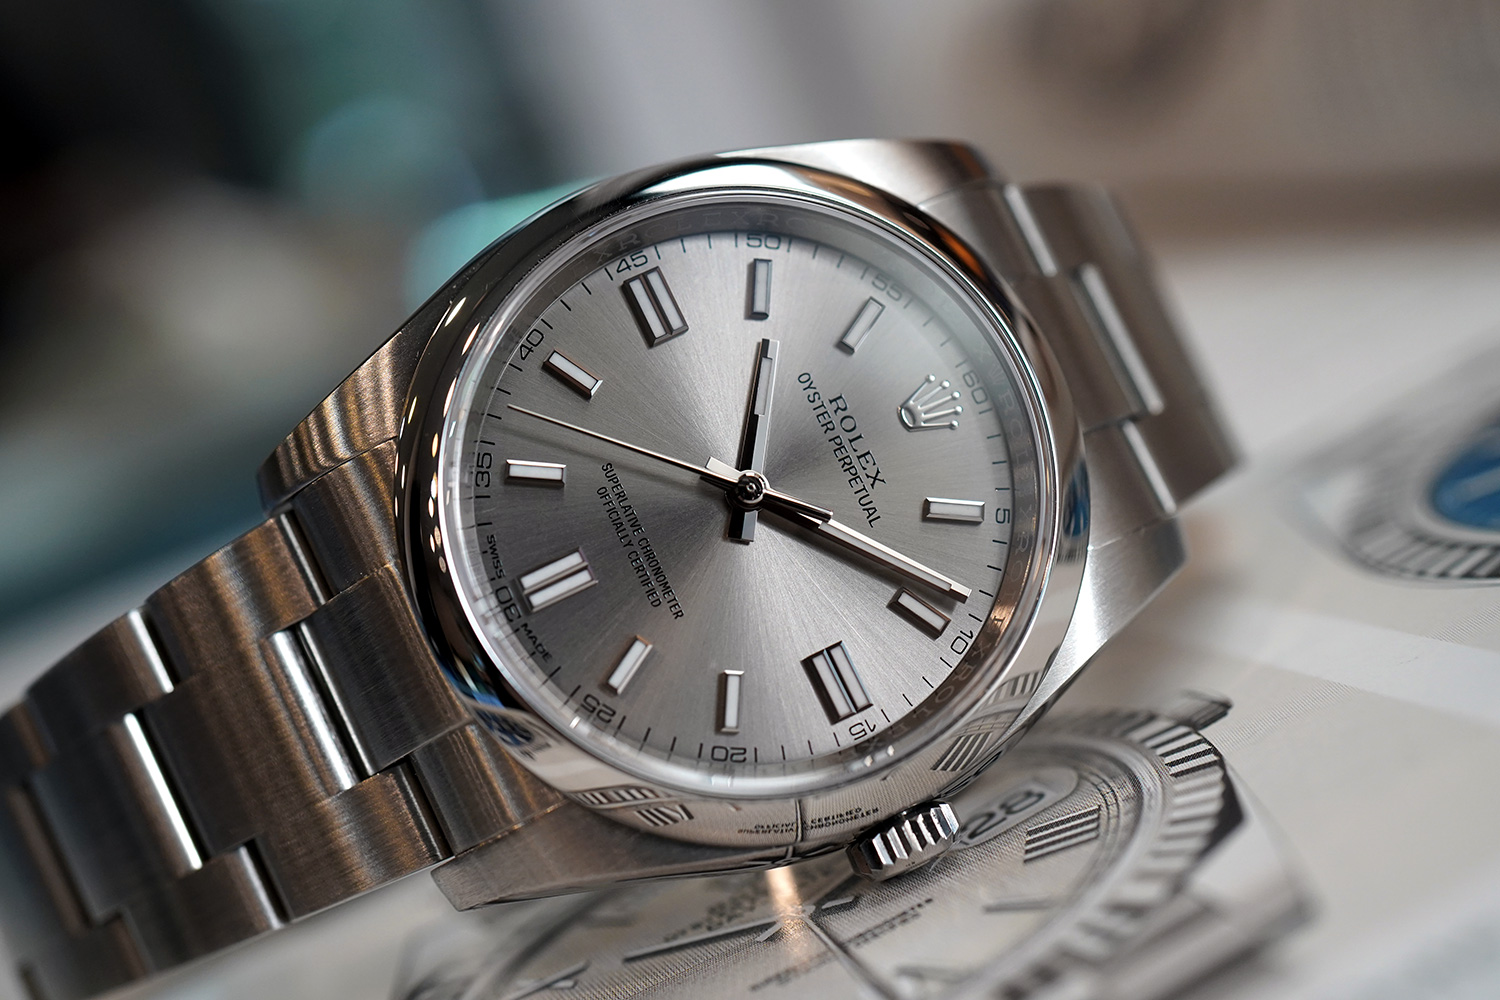 Rolex Oyster Perpetual Grey Stainless Steel Dial 36 Mm Ref